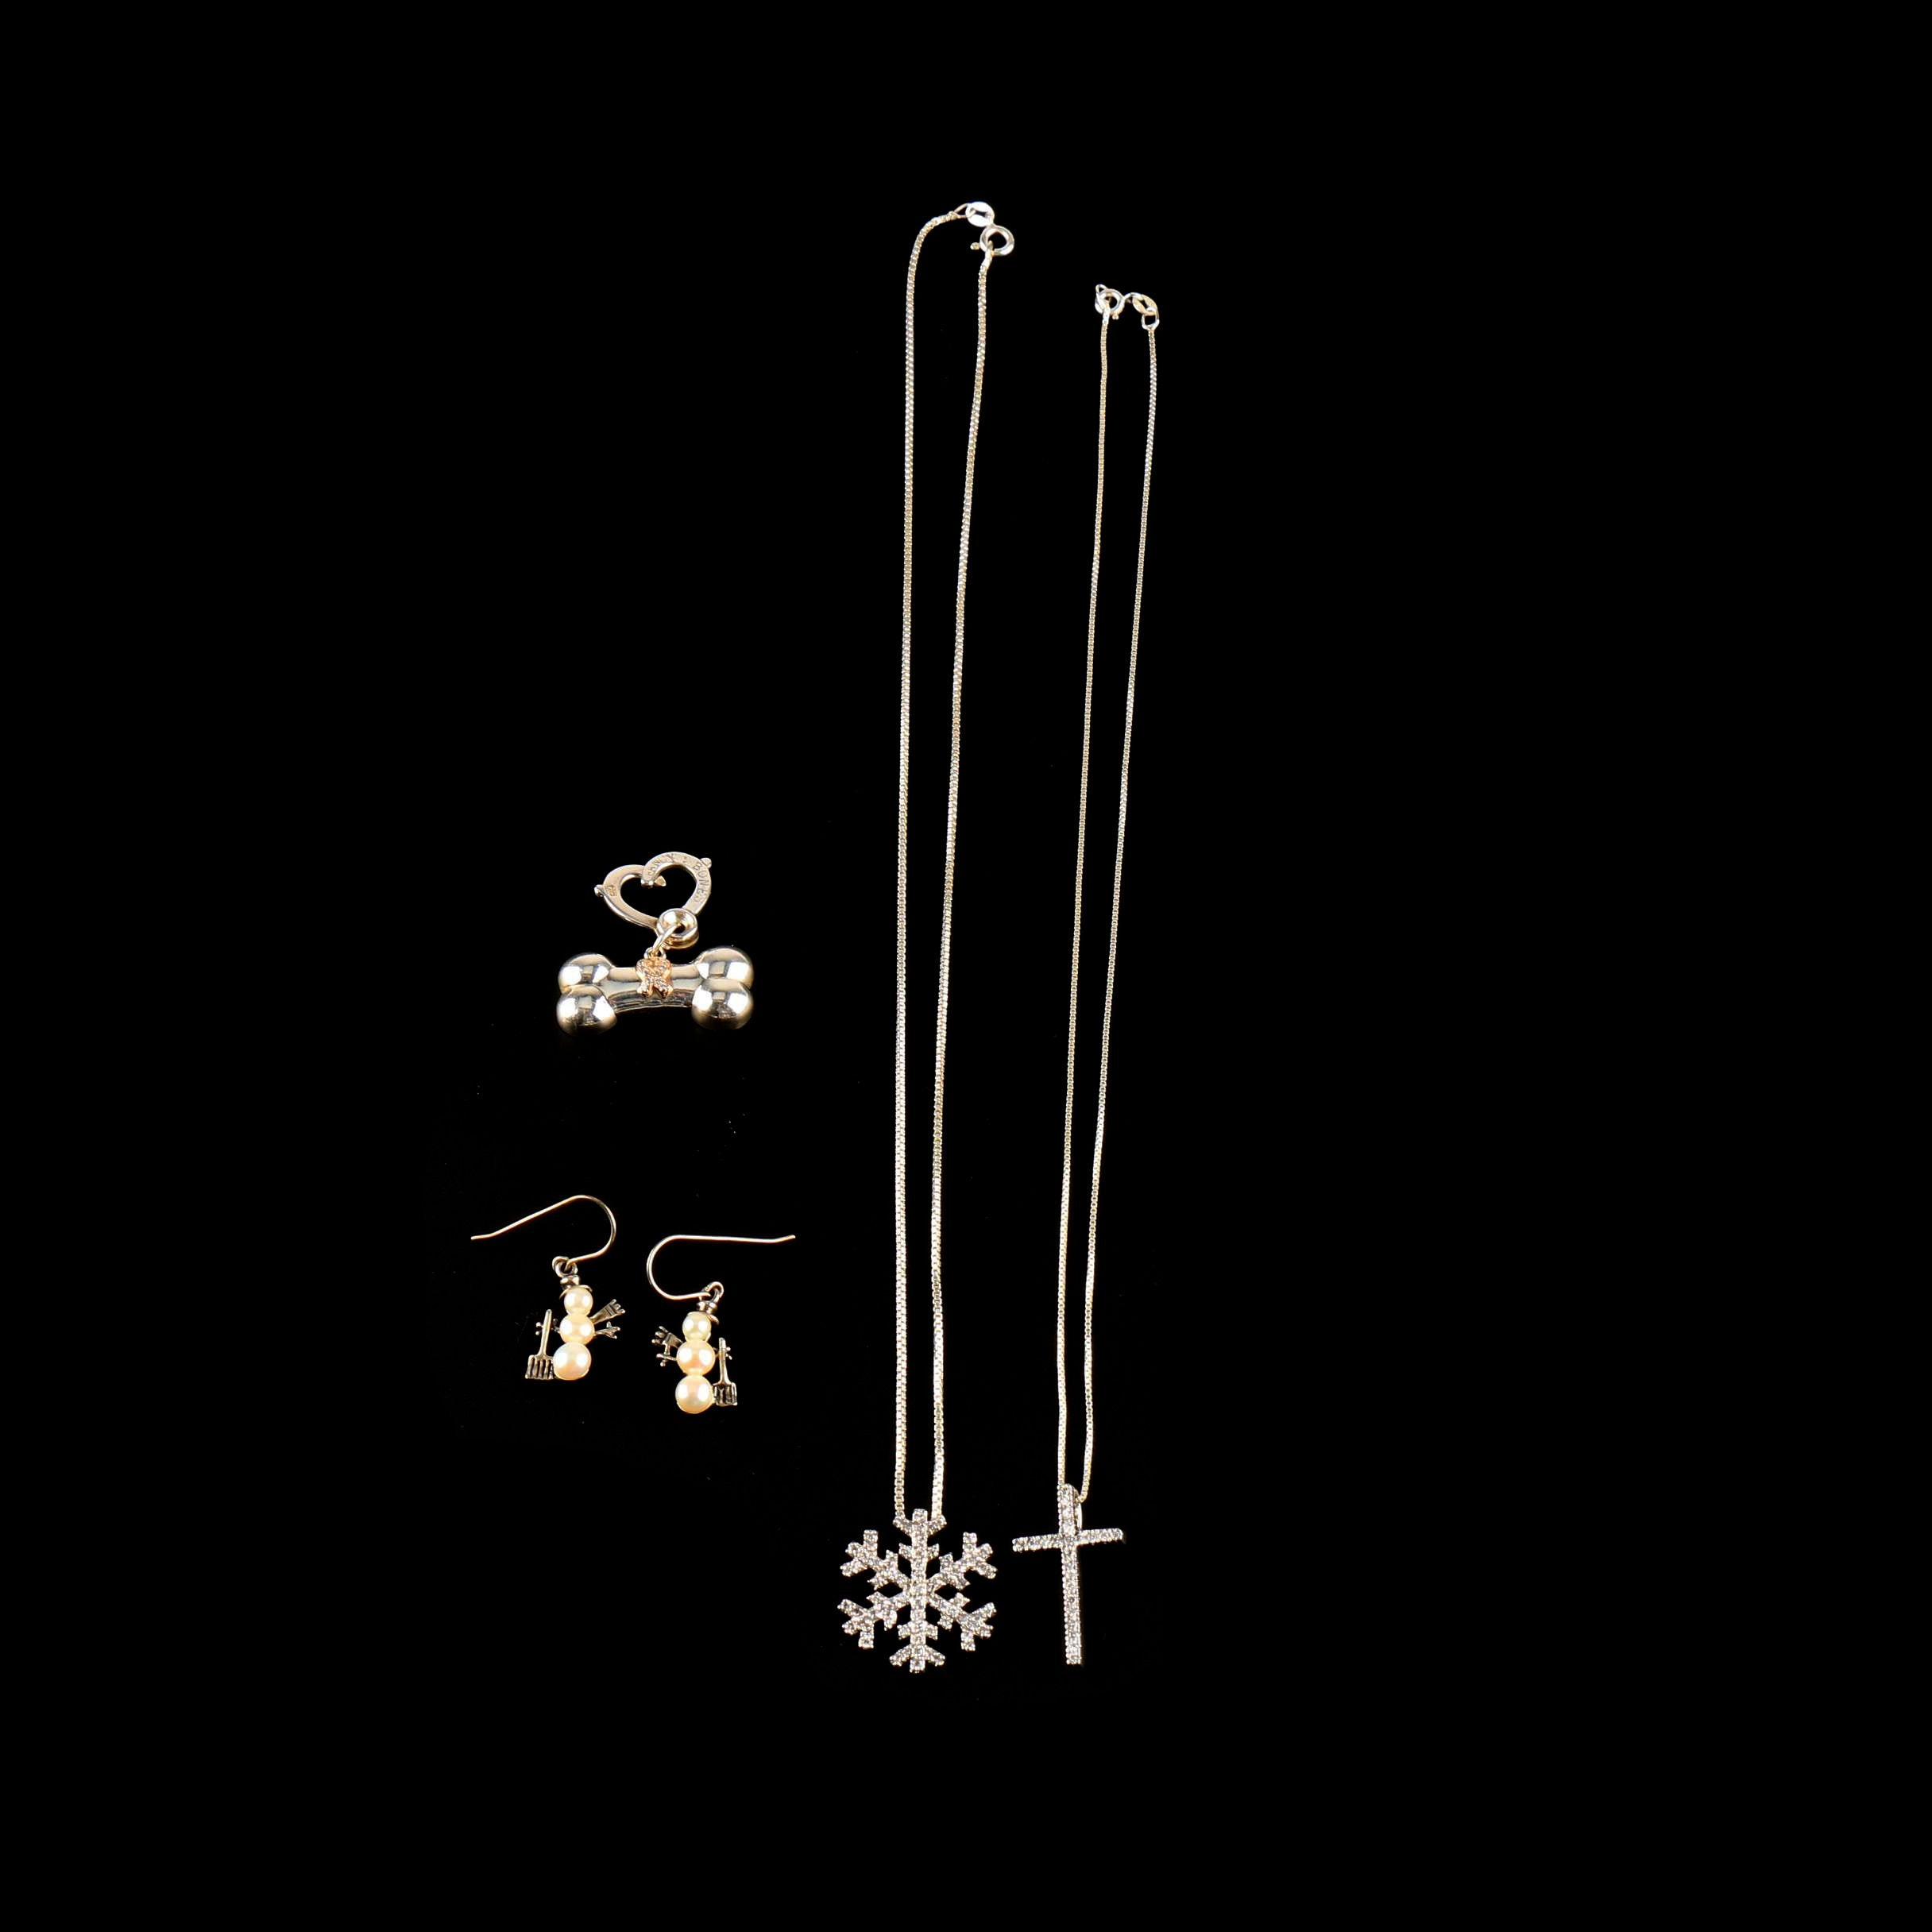 Assortment of Sterling Silver Cubic Zirconia and Cultured Pearl Jewelry